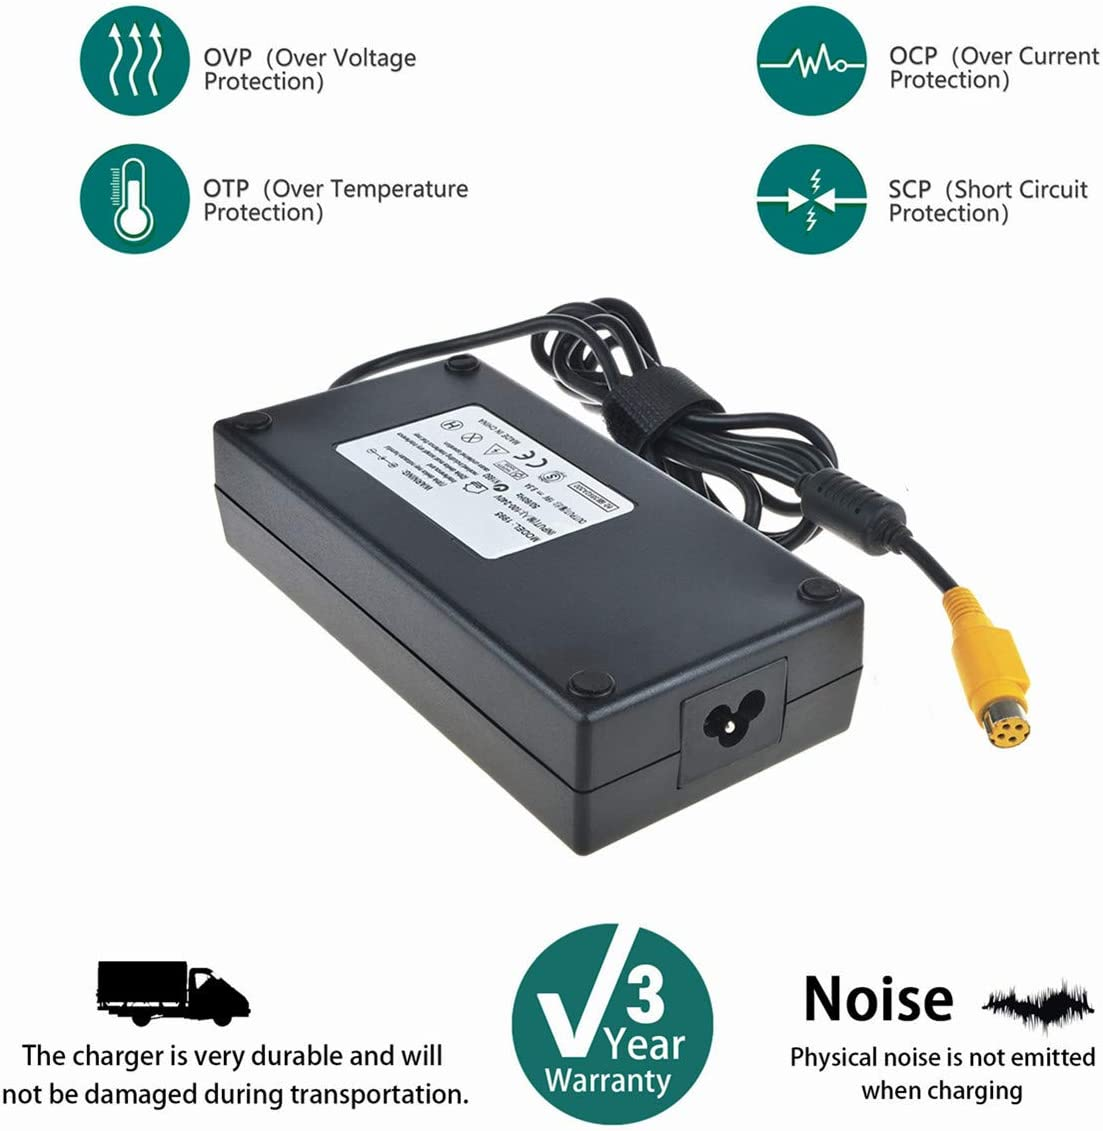 SLLEA AC//DC Adapter Charger for Toshiab Qosmio X70 X70-A-13K X70-A0DX X70-A-0DX X70-A0DW X70-A-0DW X70-A00U X70-A-00U X70-A014 X70-A-014 Notebook PC Power Supply Cord Cable